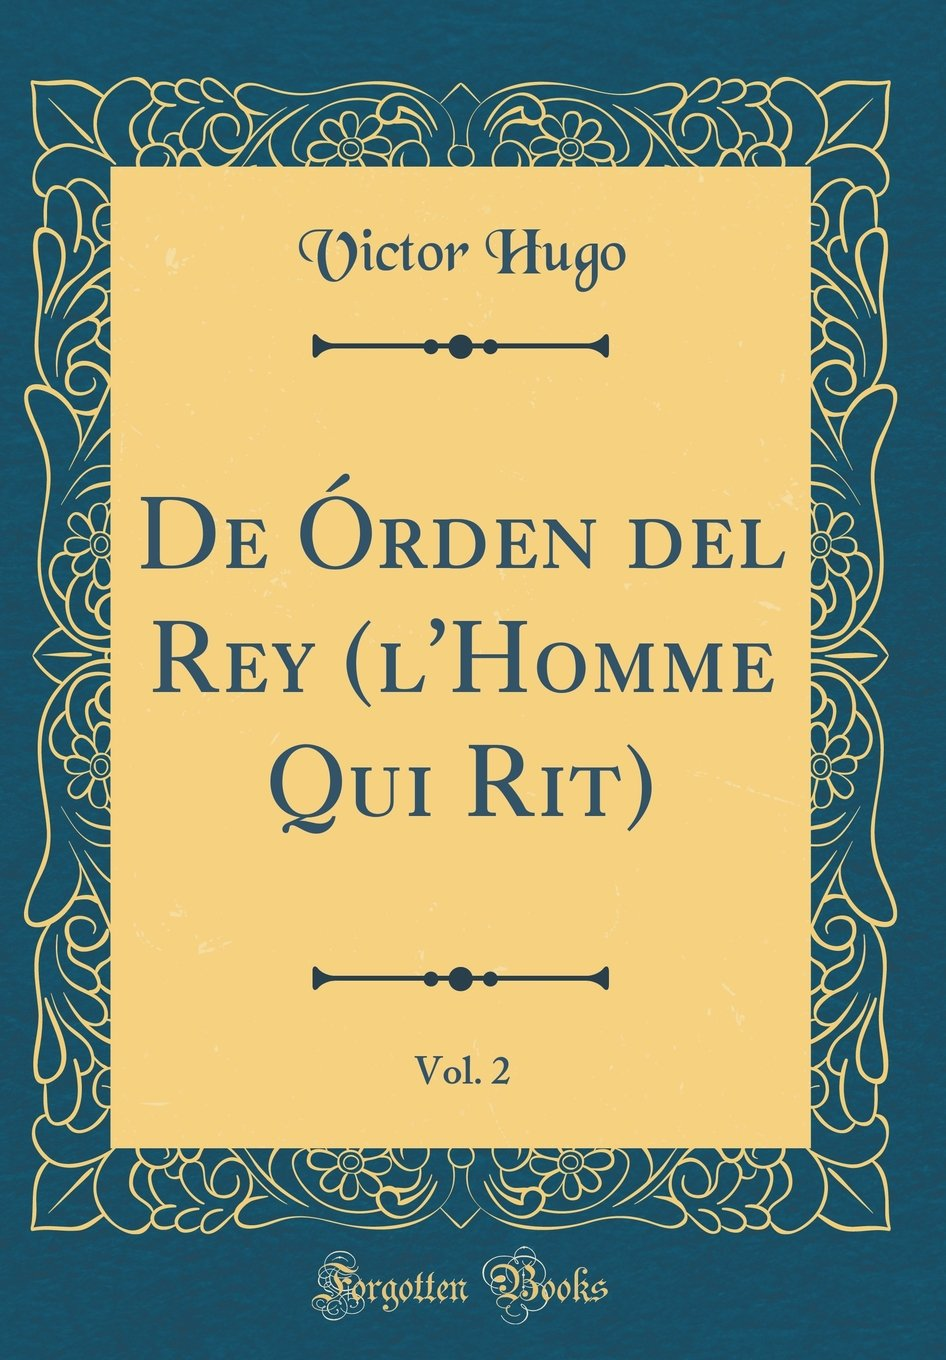 De Órden del Rey (lHomme Qui Rit), Vol. 2 (Classic Reprint) (Spanish Edition): Victor Hugo: 9780666938008: Amazon.com: Books